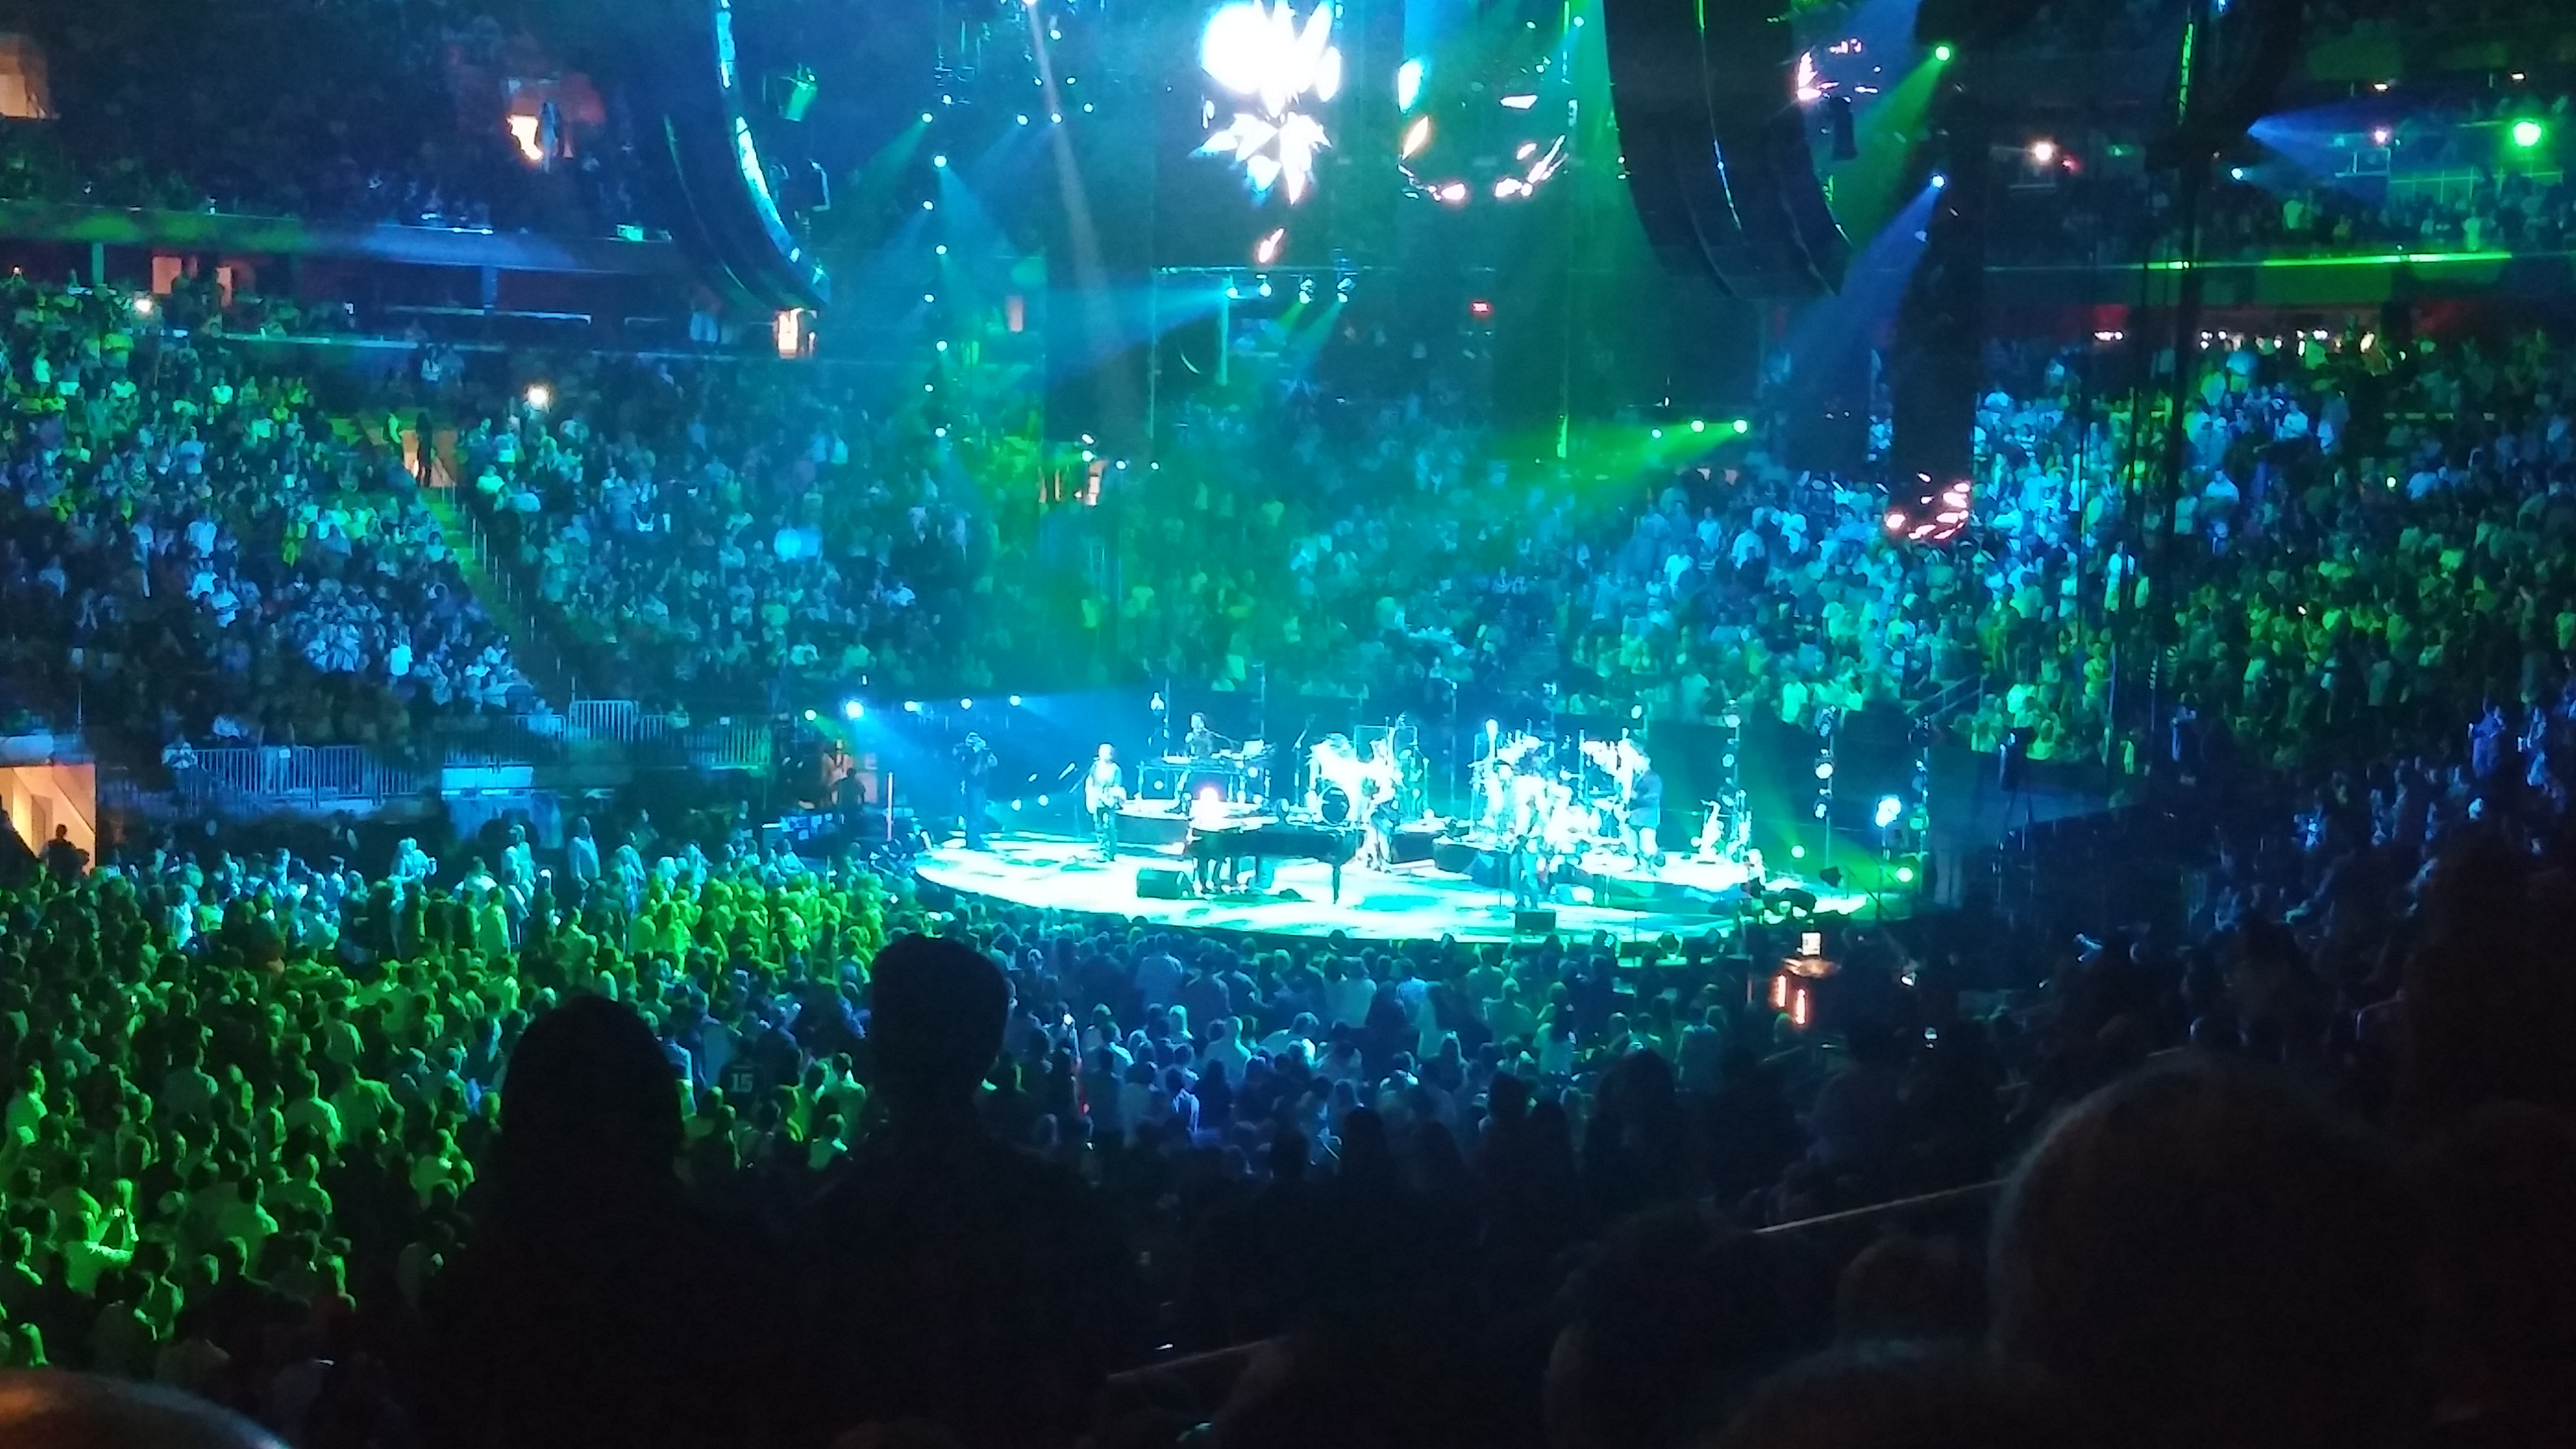 billy joel at madison square garden in nyc through the